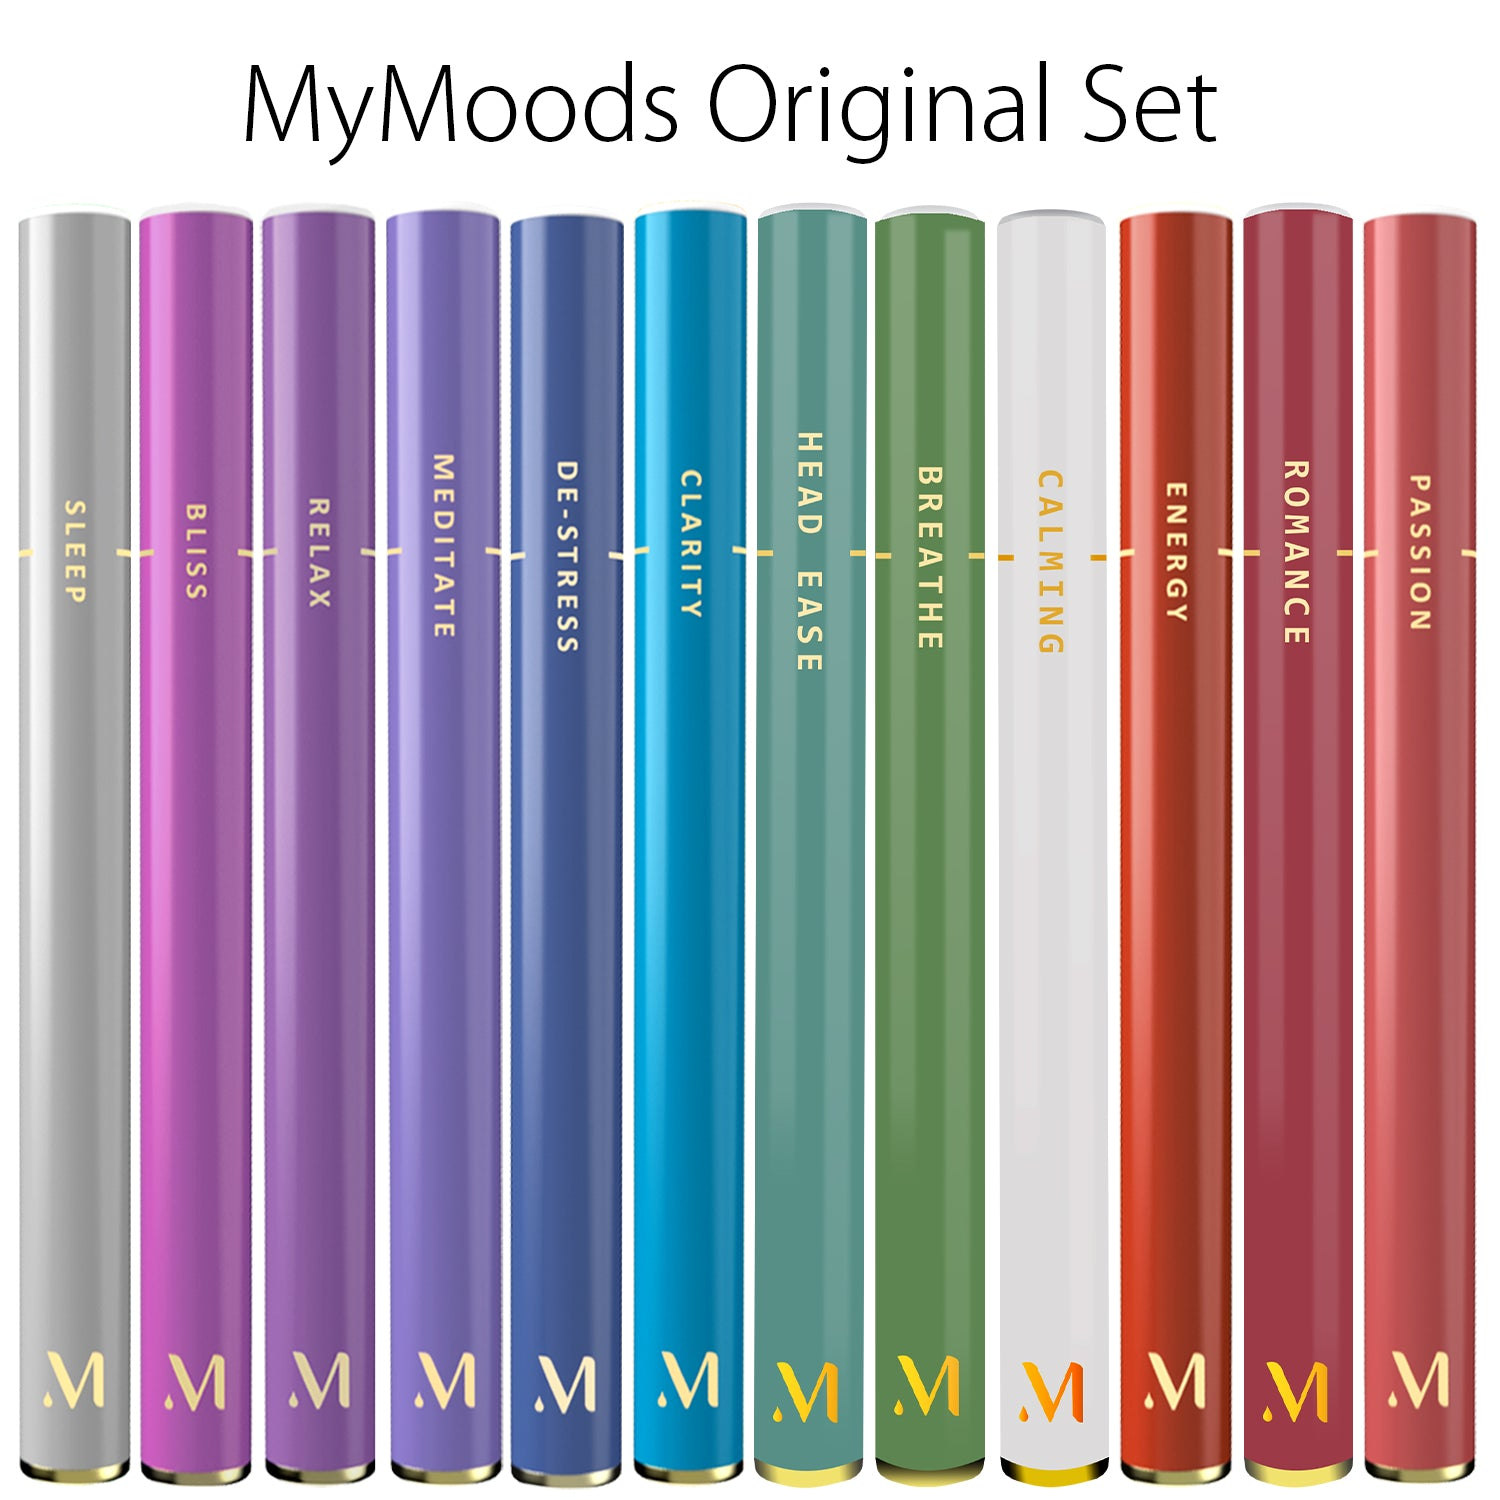 MyMoods Original Set